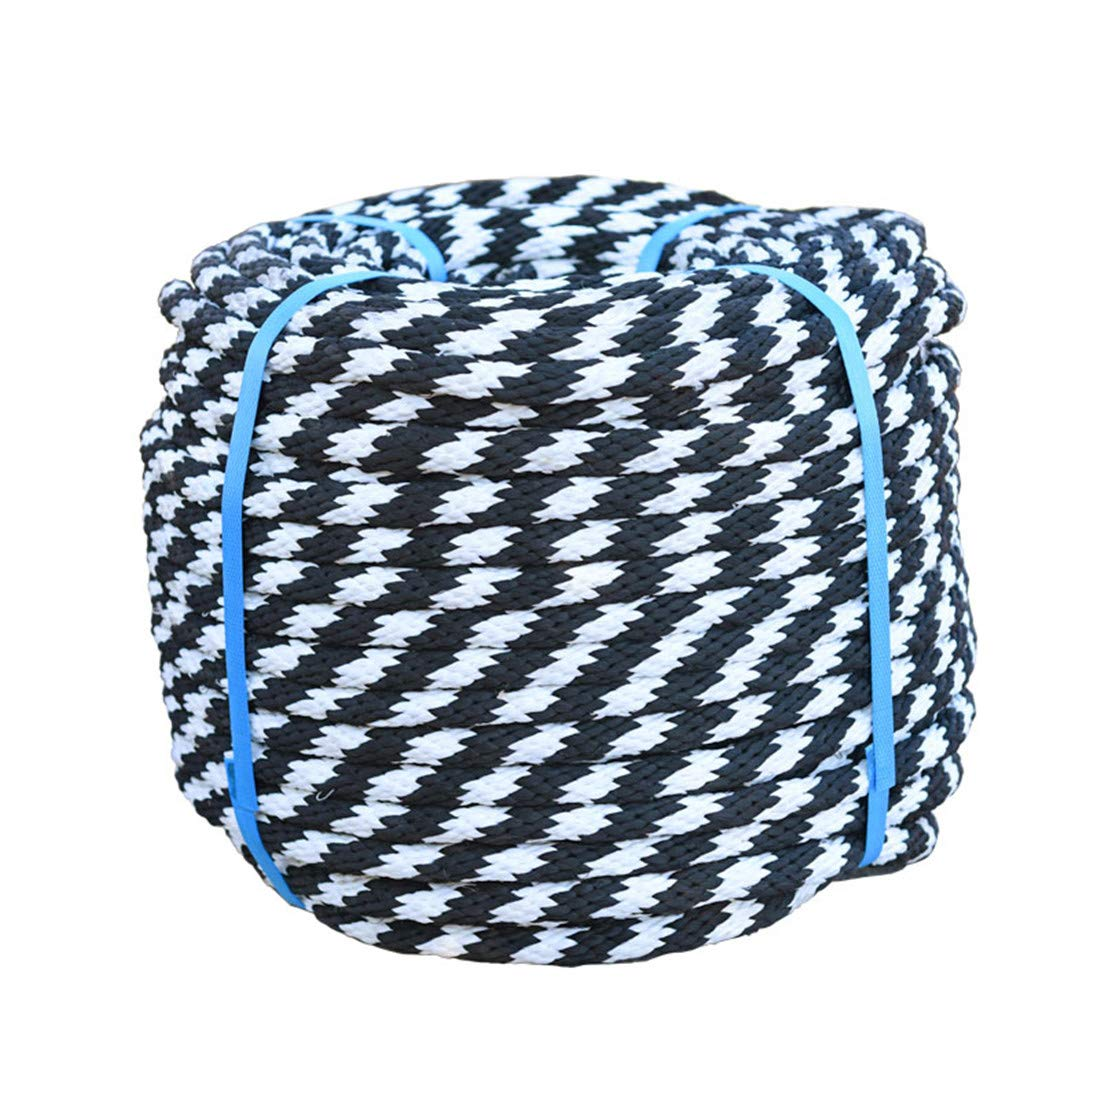 Nylon Truck Car Tow Rope Straps Heavy Load Uses Twisted Synthetic Rope Weather Resistant Crafts DIY Projects Towing Dock Lines Industrial Grade